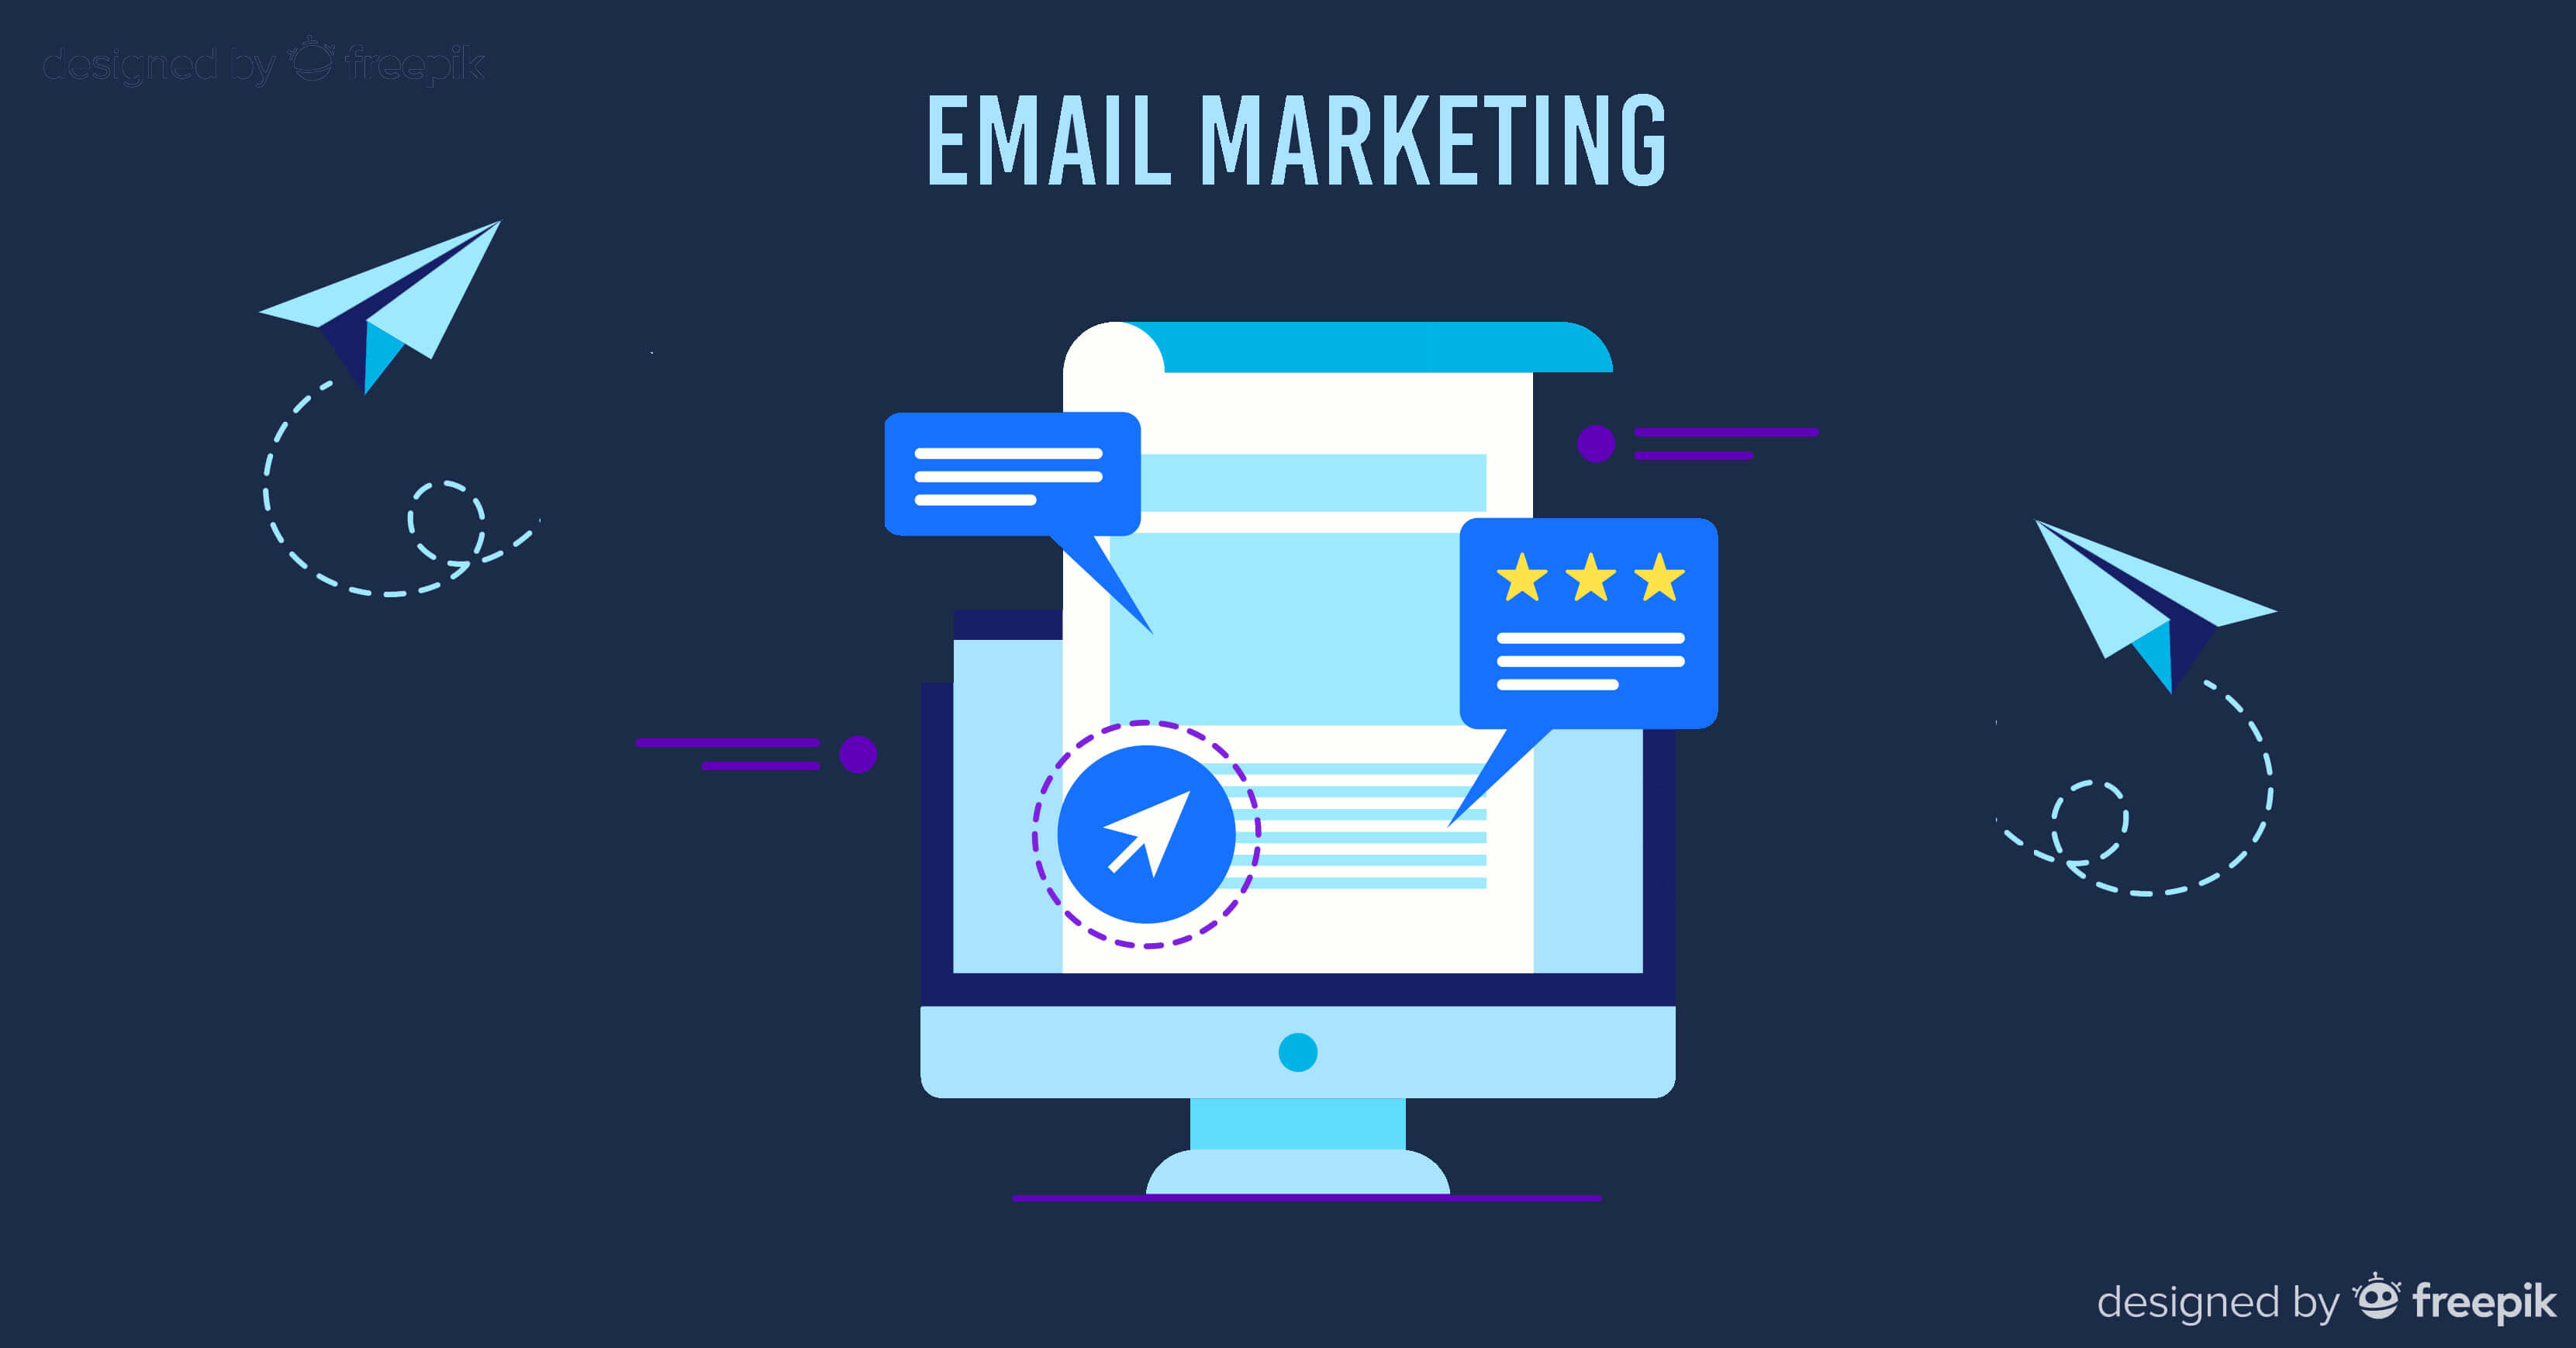 E-mail marketing strategies and practices in 2019